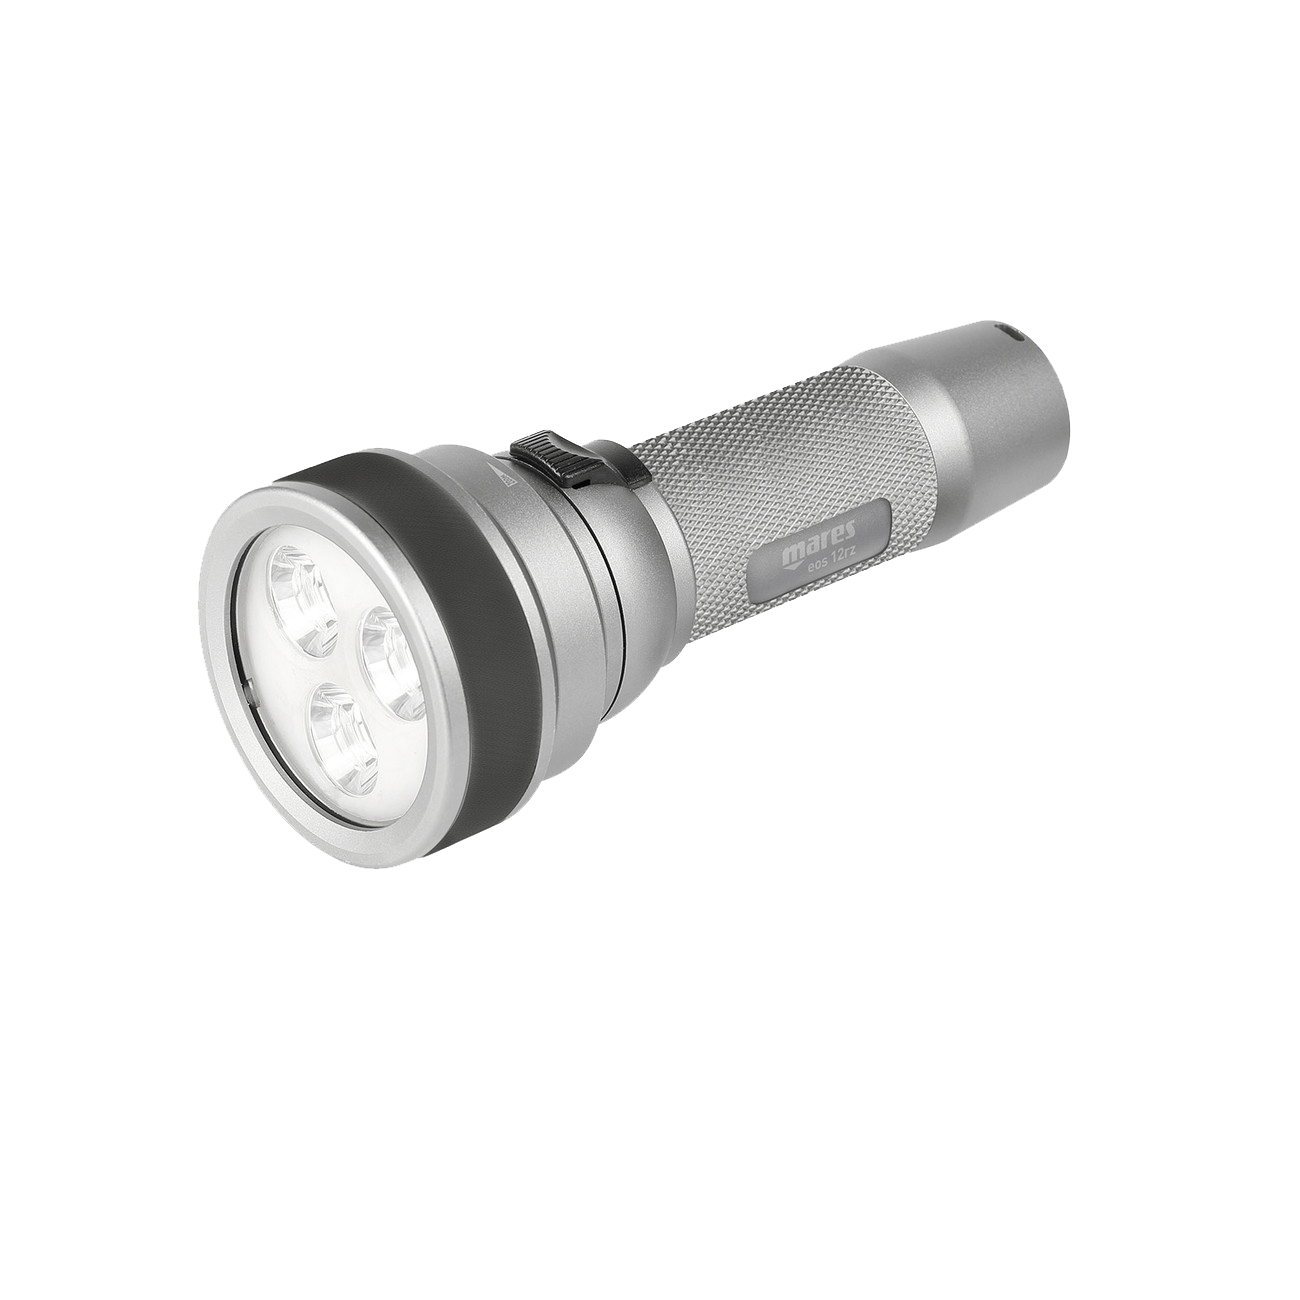 Mares EOS 12RZ Torch | Mares Torch | Mares Singapore